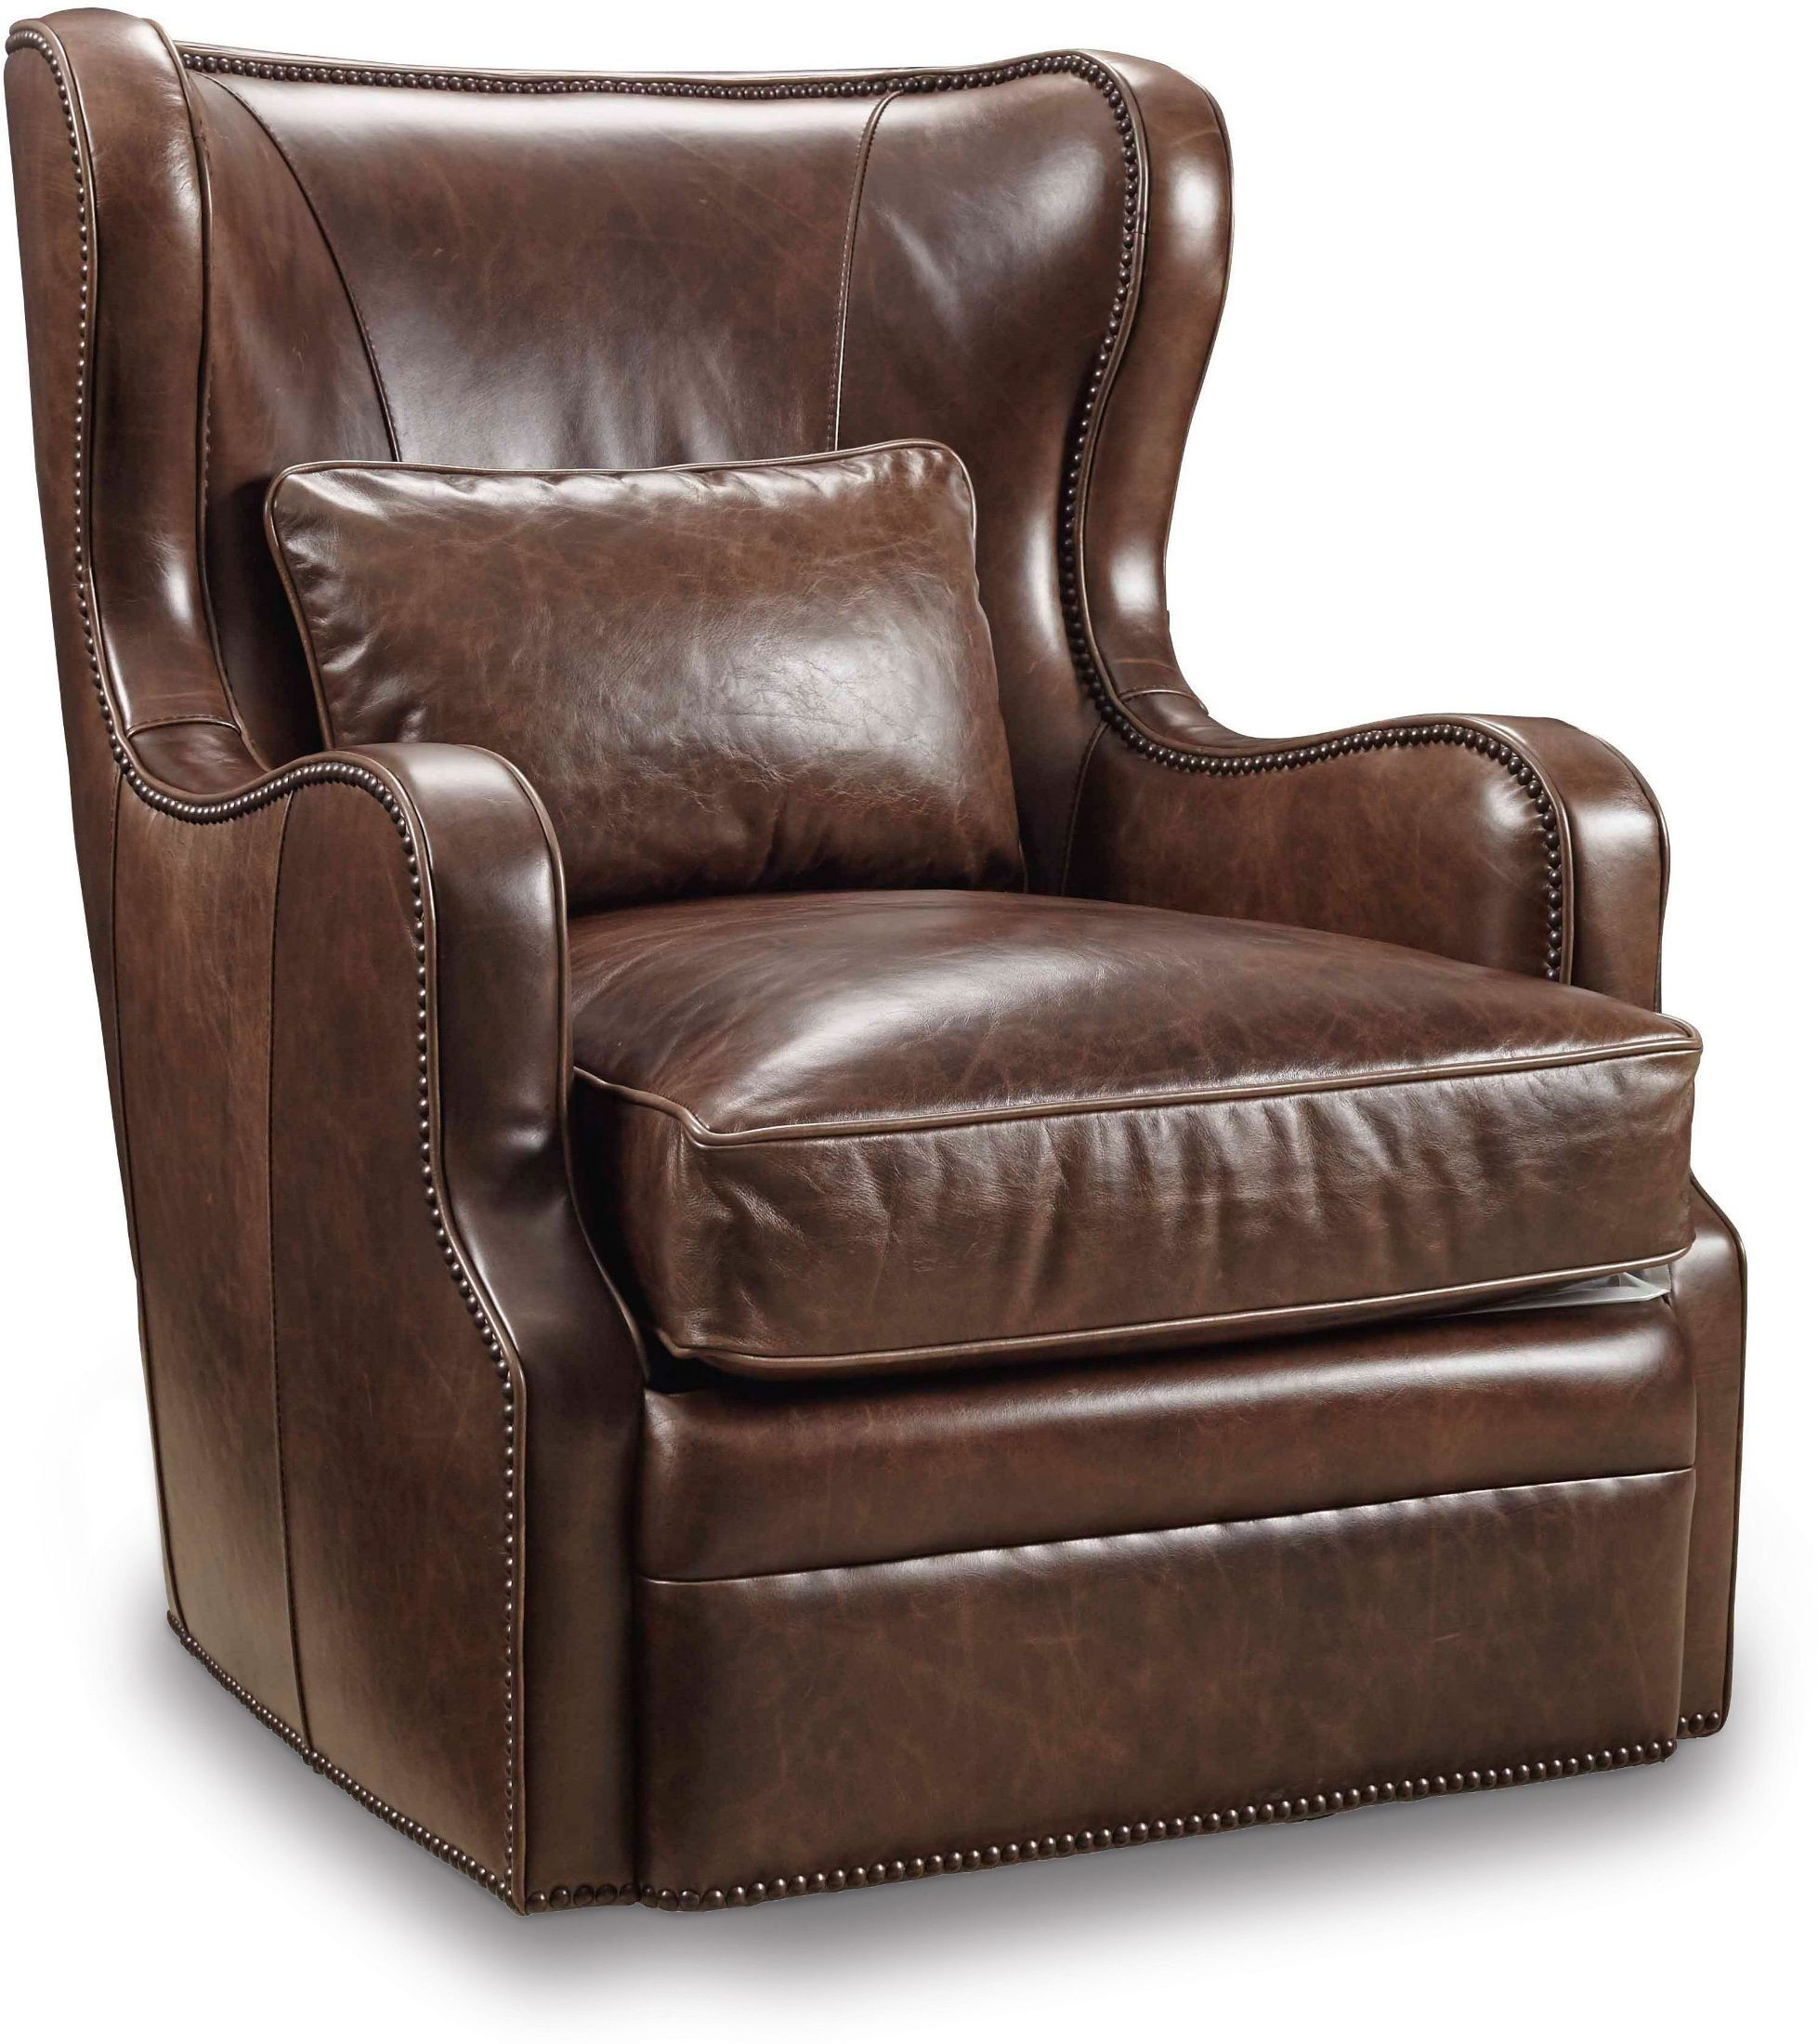 Wellington Brown Leather Swivel Club Chair from Hooker